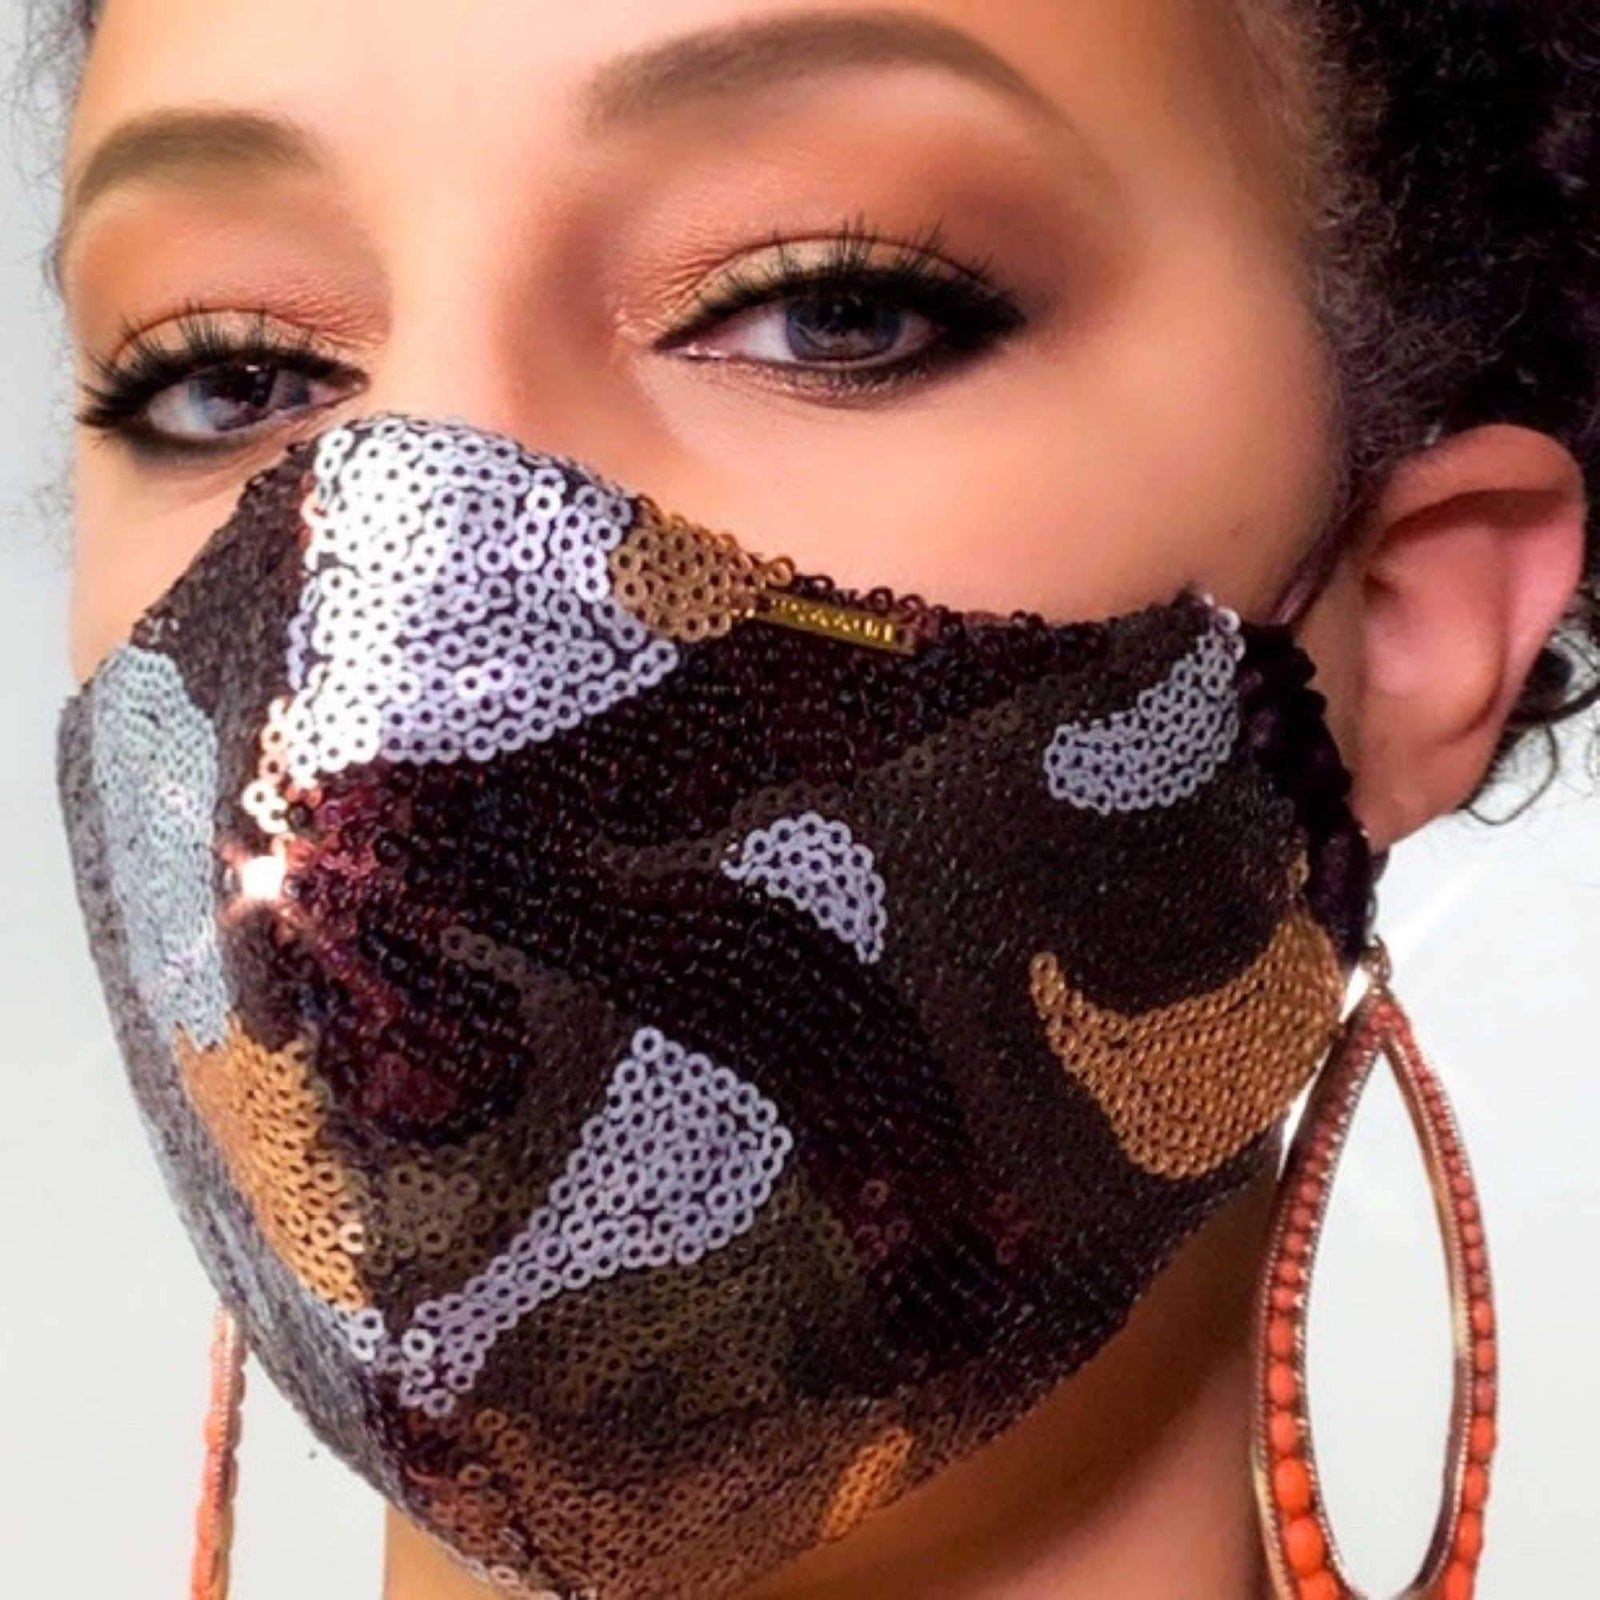 Camouflage Sequin Face Mask Lined With 100% Cotton Washable Reusable Filter Pocket